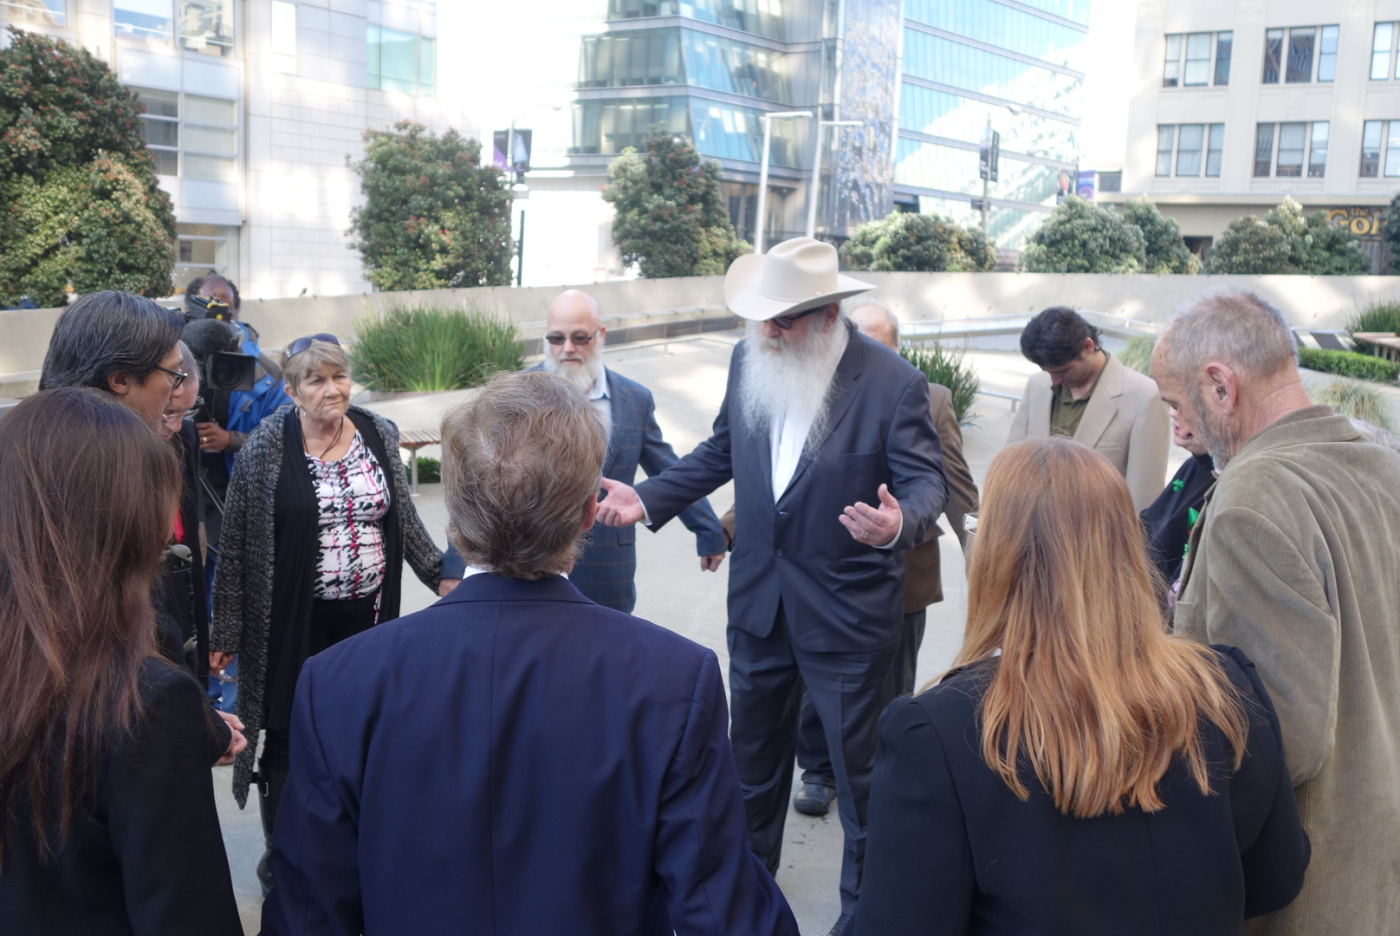 Bryan Davies, owner of medical marijuana dispensary Canna Care, leads supporters in prayer before facing the Internal Revenue Service in tax court on Feb. 24, 2014.